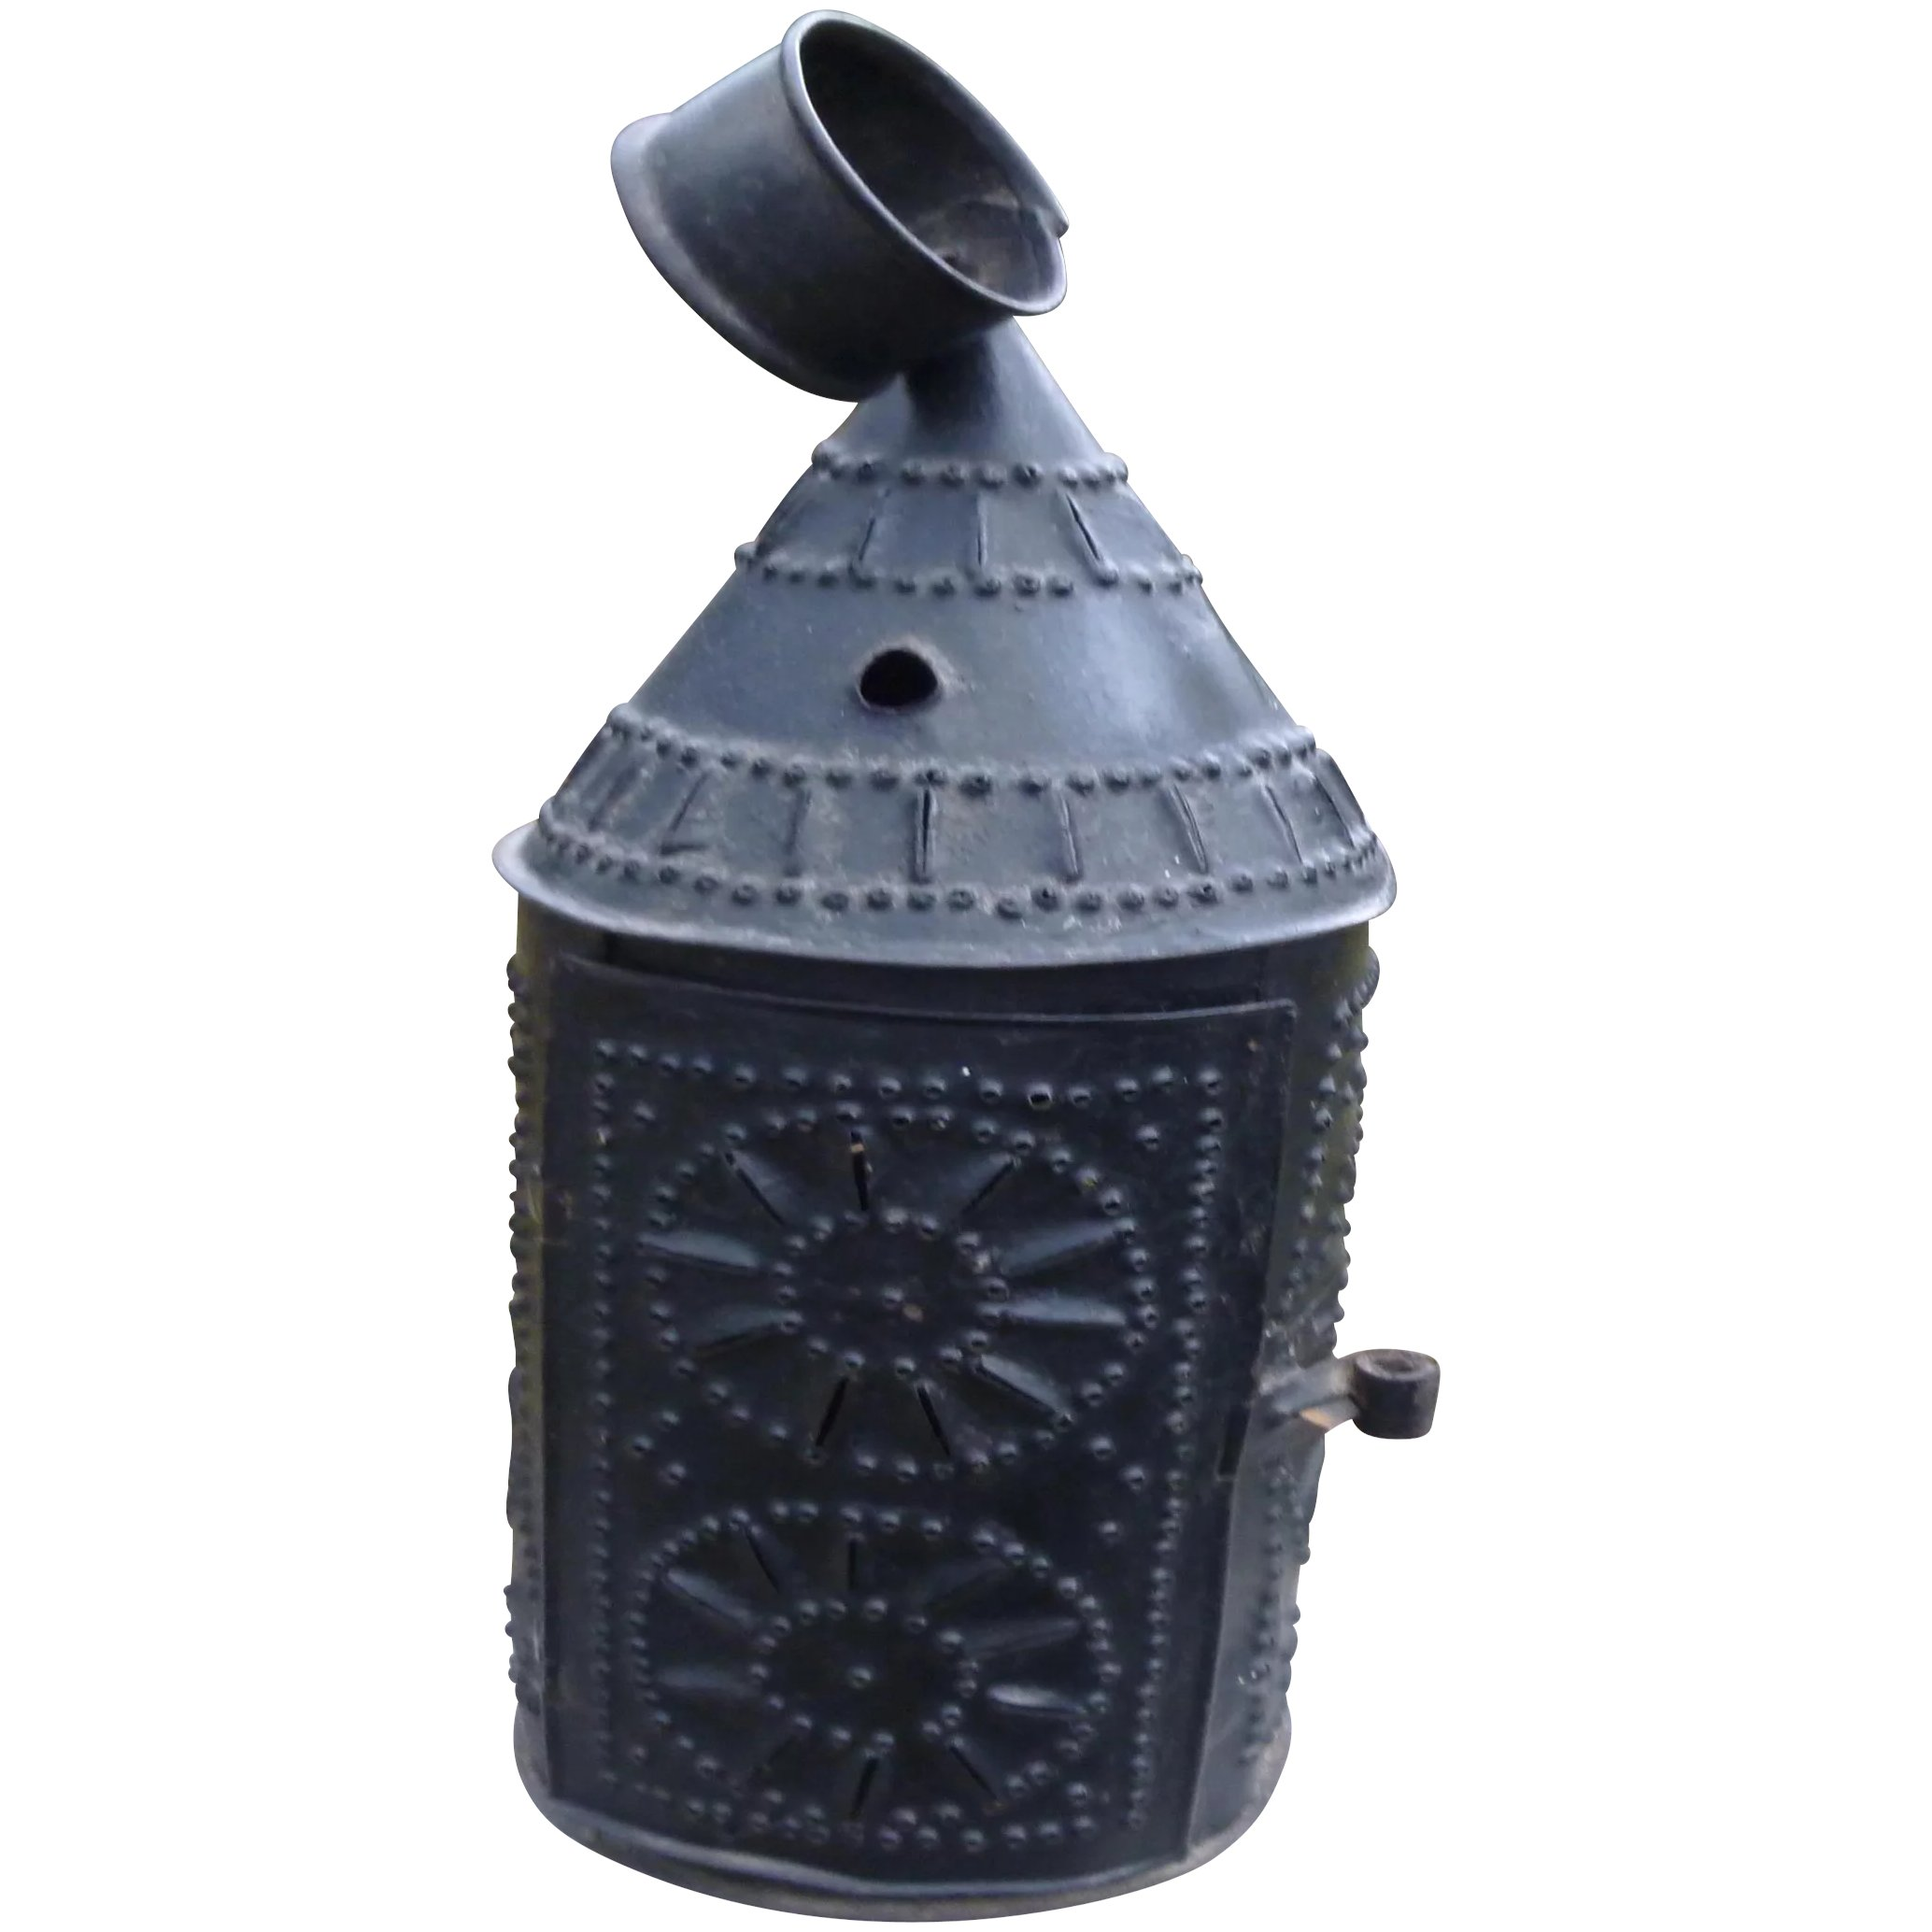 Antique Punched Tin Candle Lantern. Click to expand